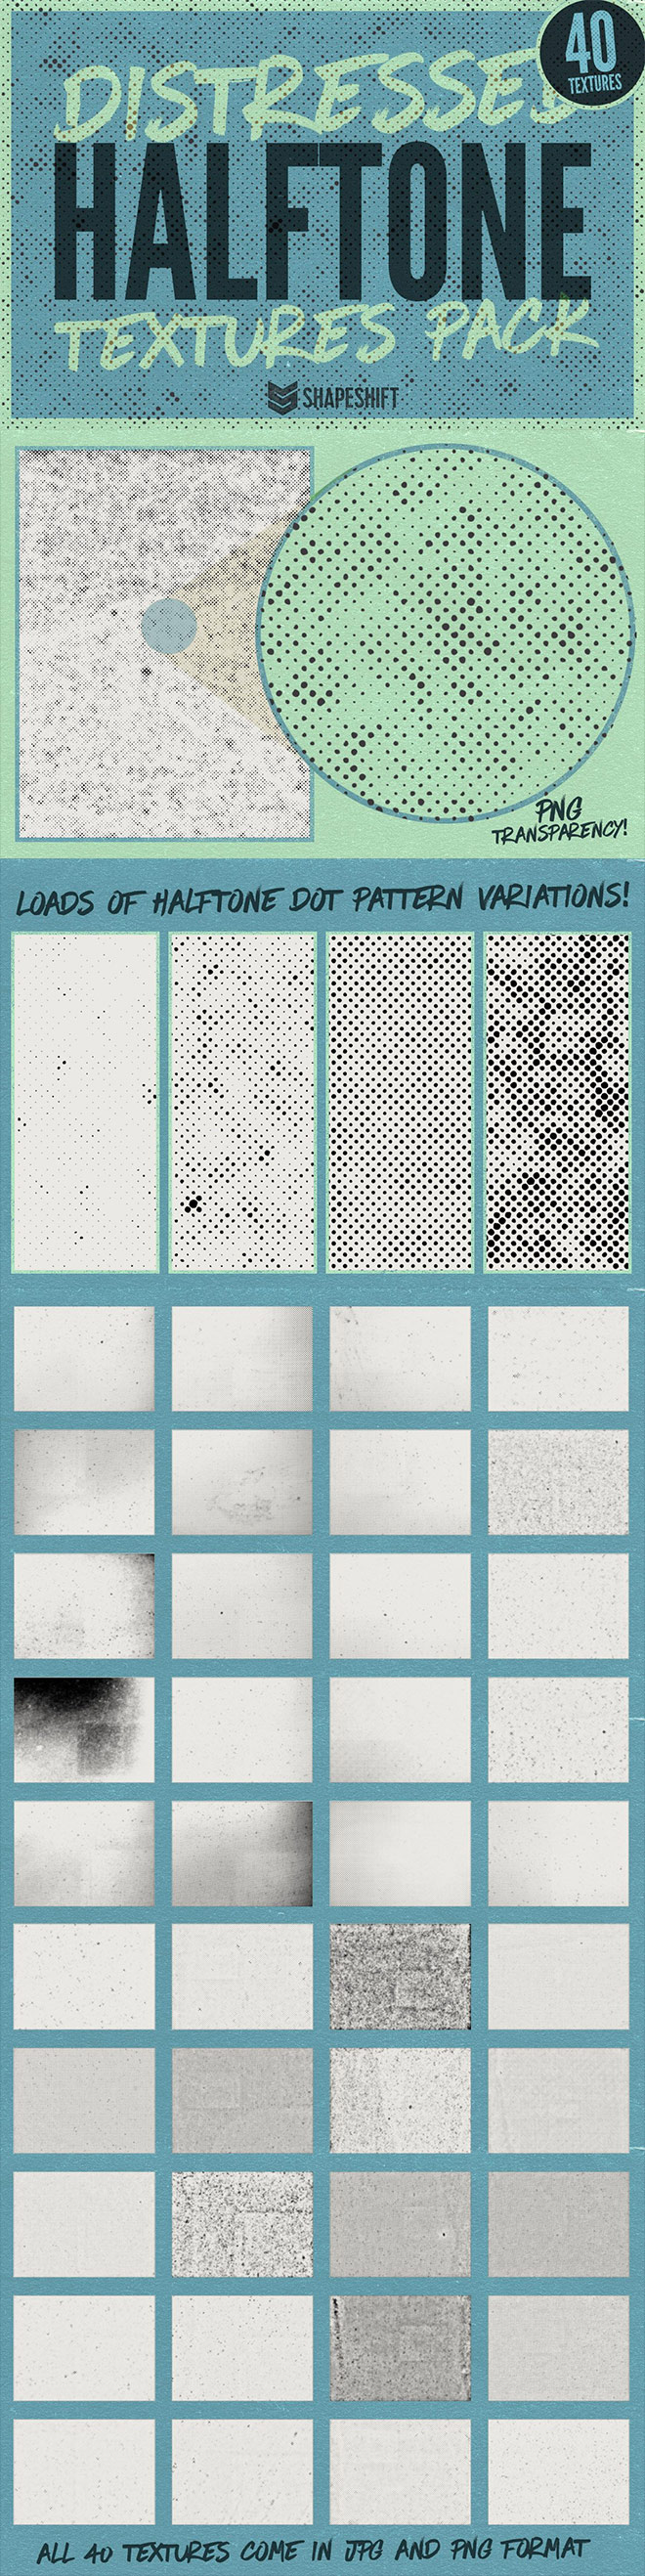 Distressed Halftone Textures Pack for Premium Members